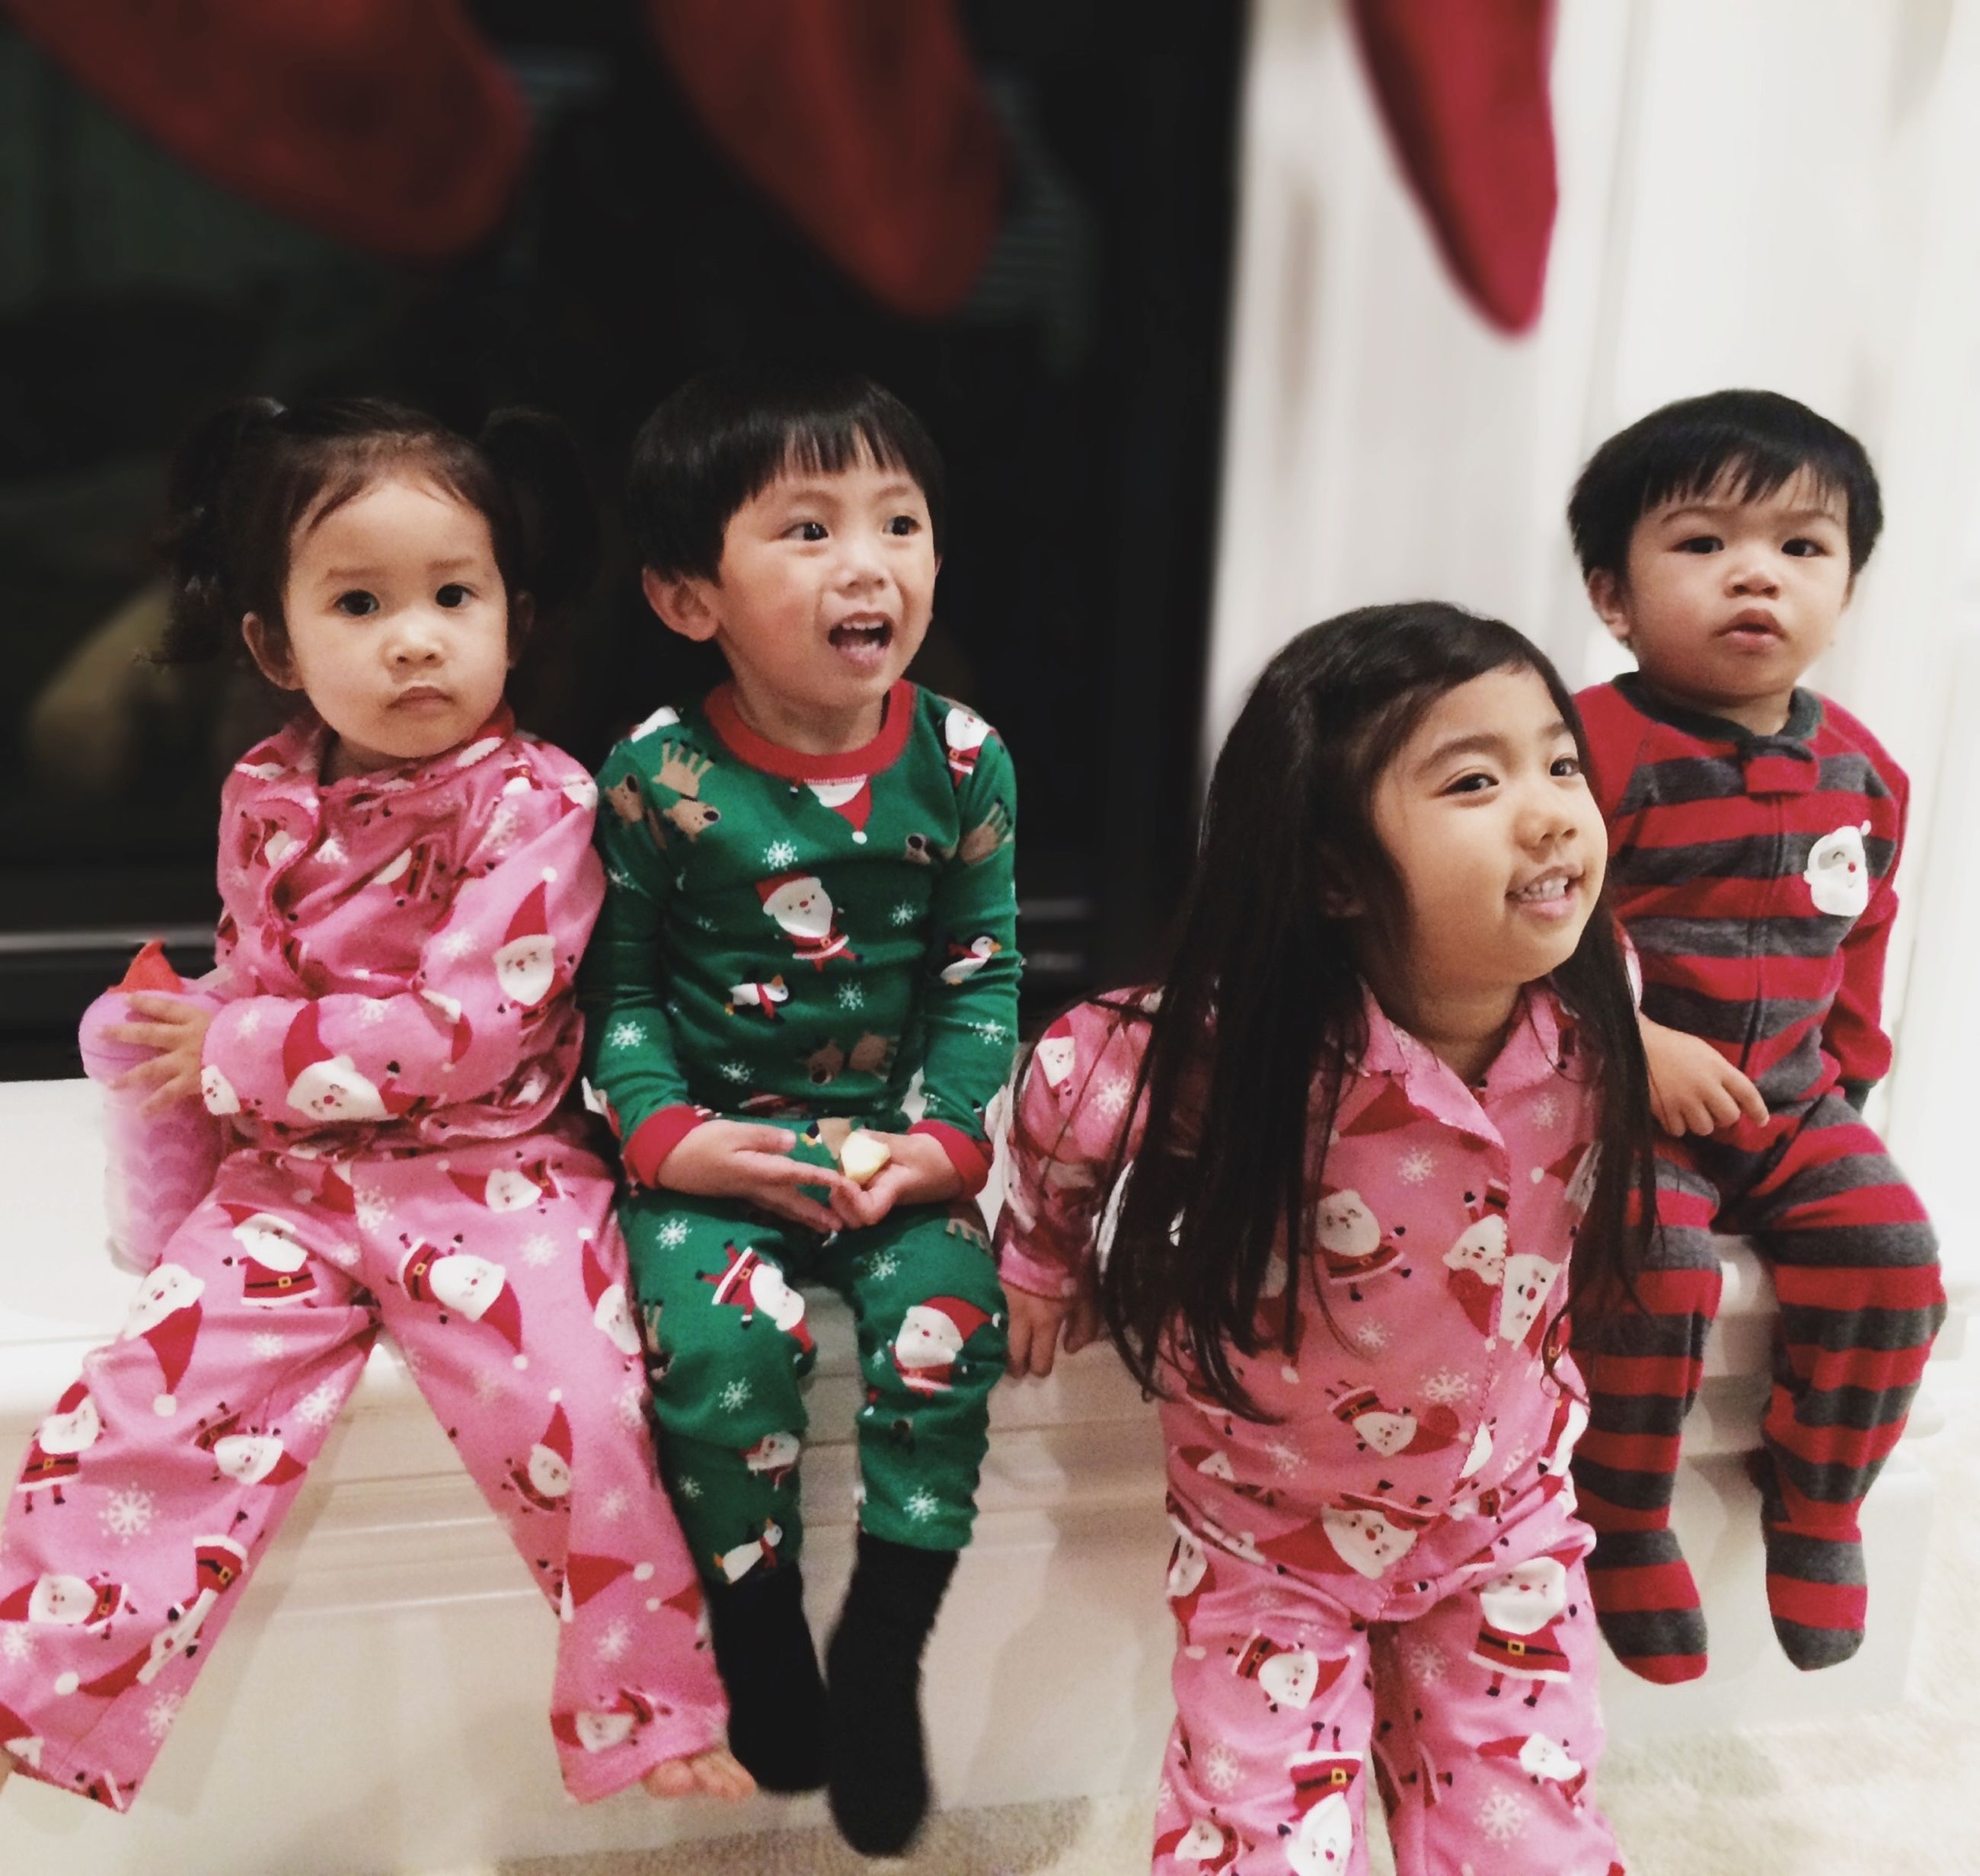 togetherness, bonding, childhood, lifestyles, love, person, leisure activity, smiling, happiness, girls, casual clothing, portrait, family, elementary age, looking at camera, sister, sibling, front view